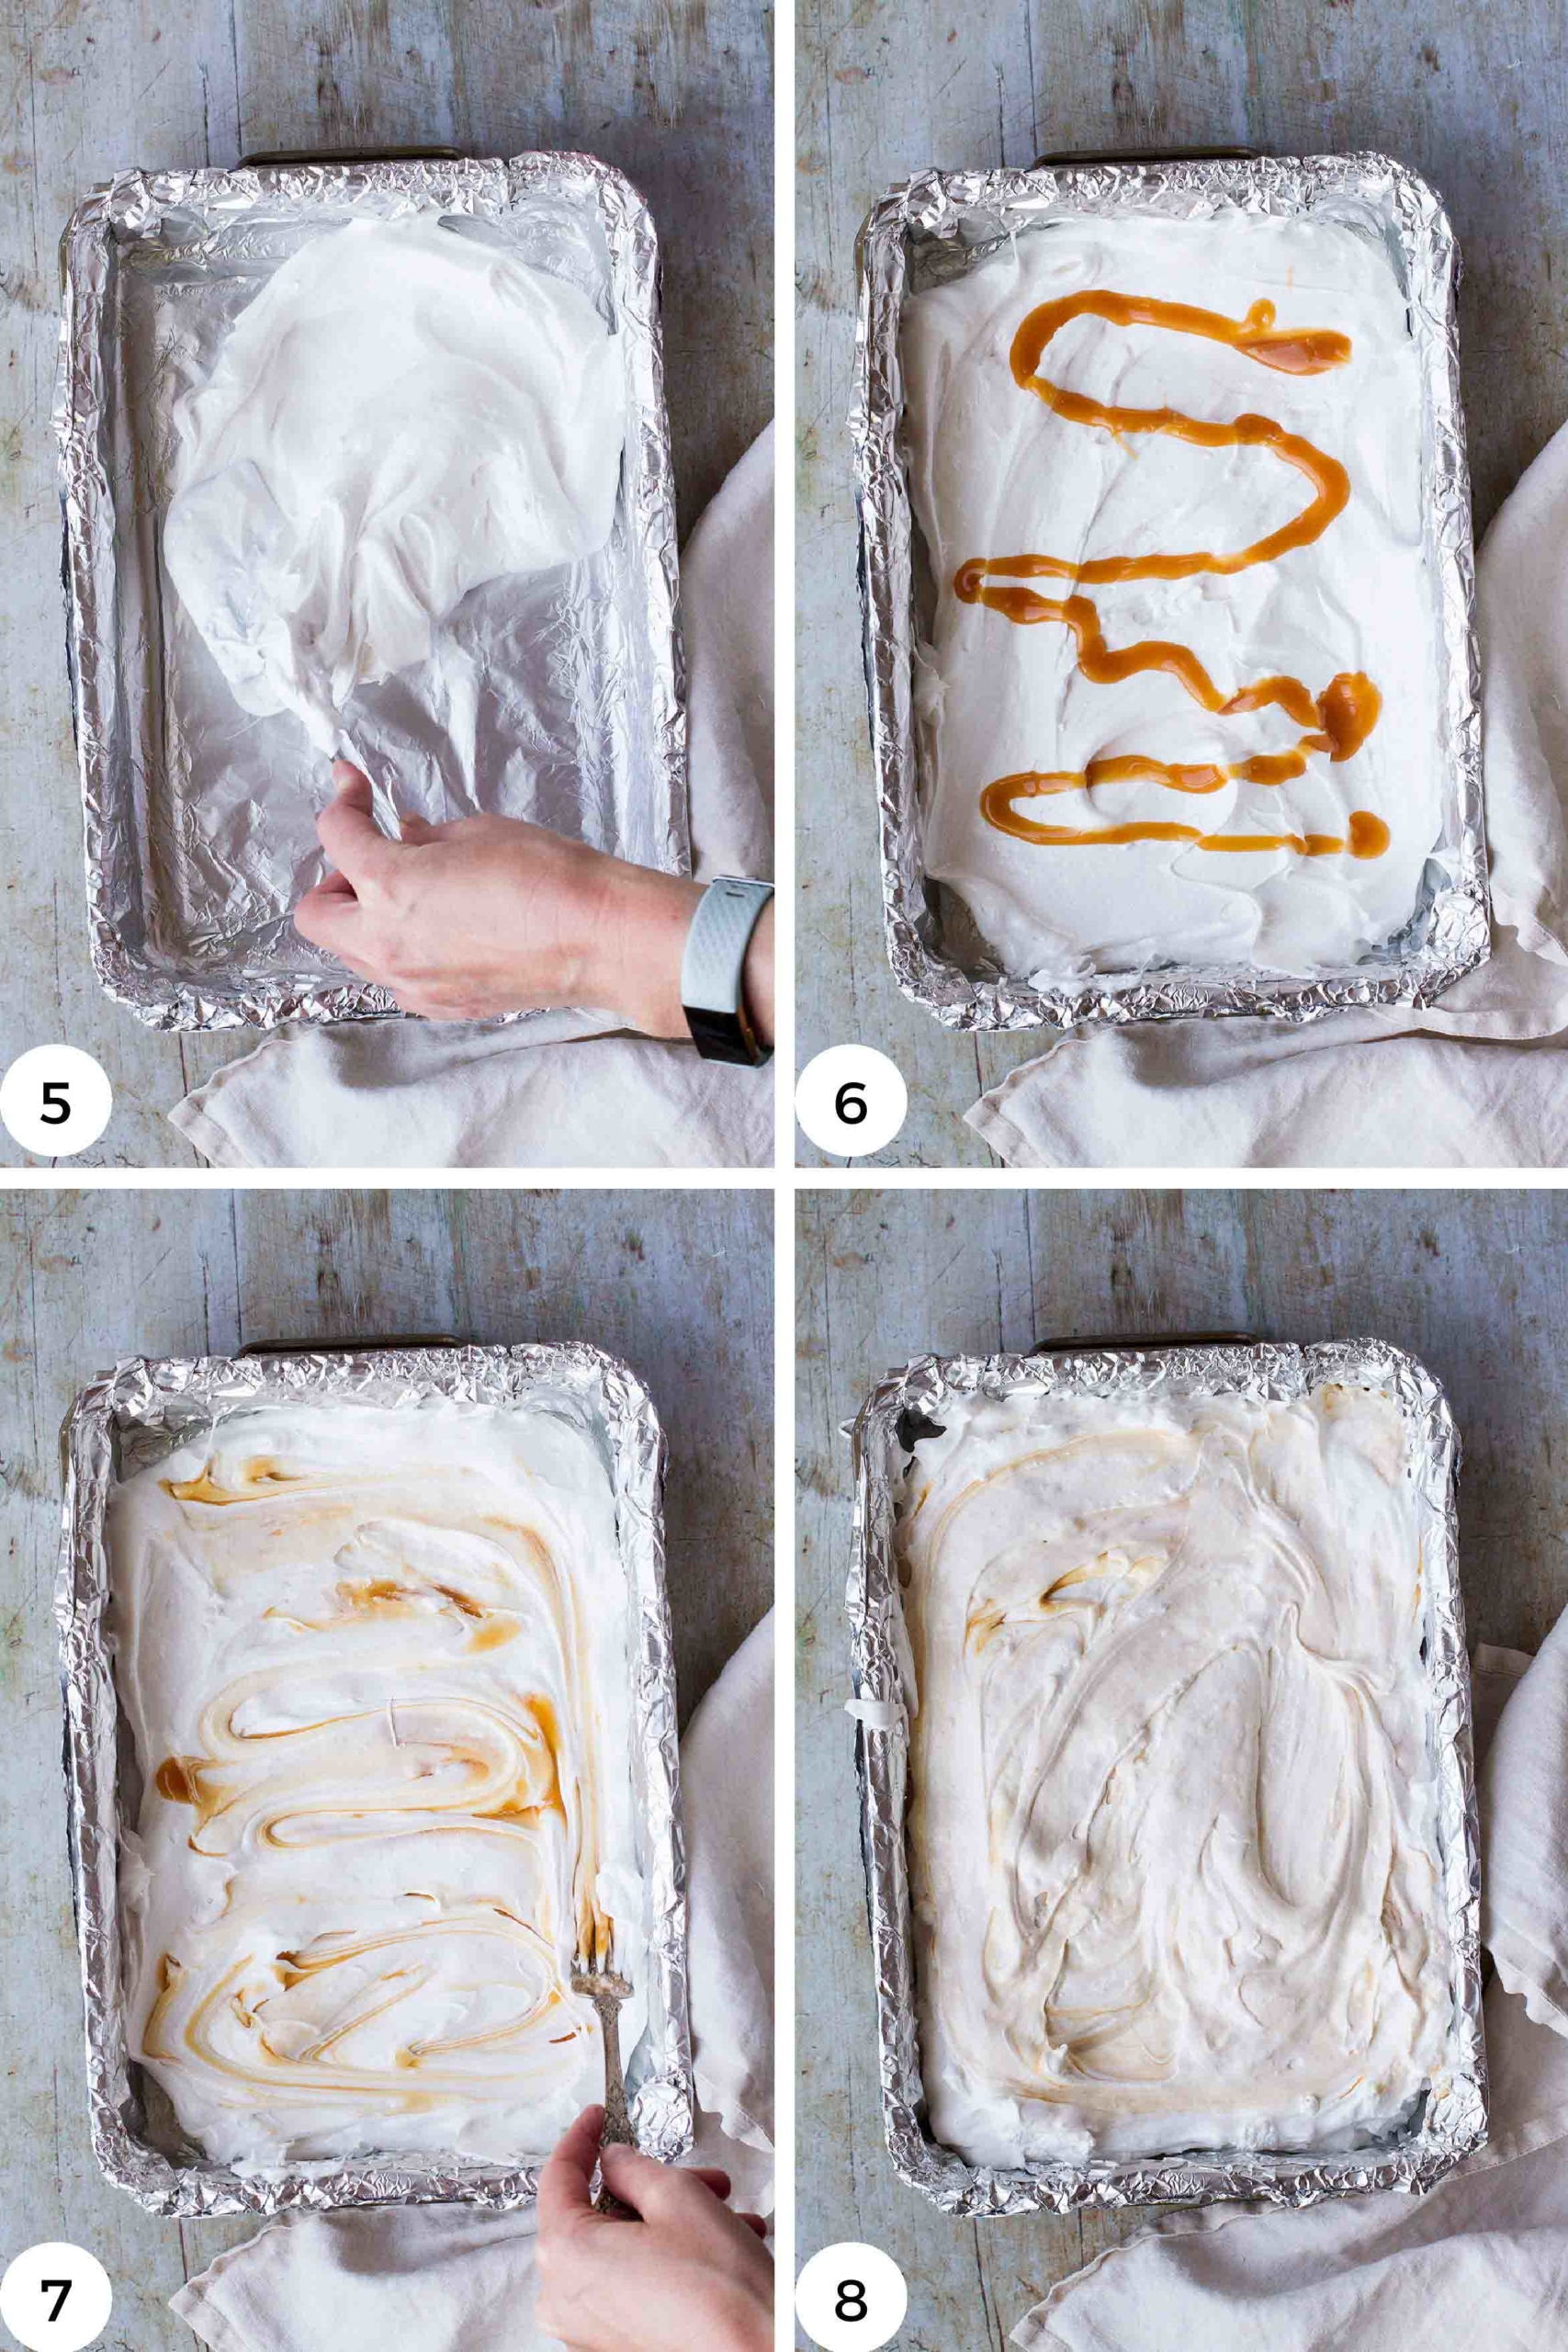 Steps to make the salted caramel ripples.